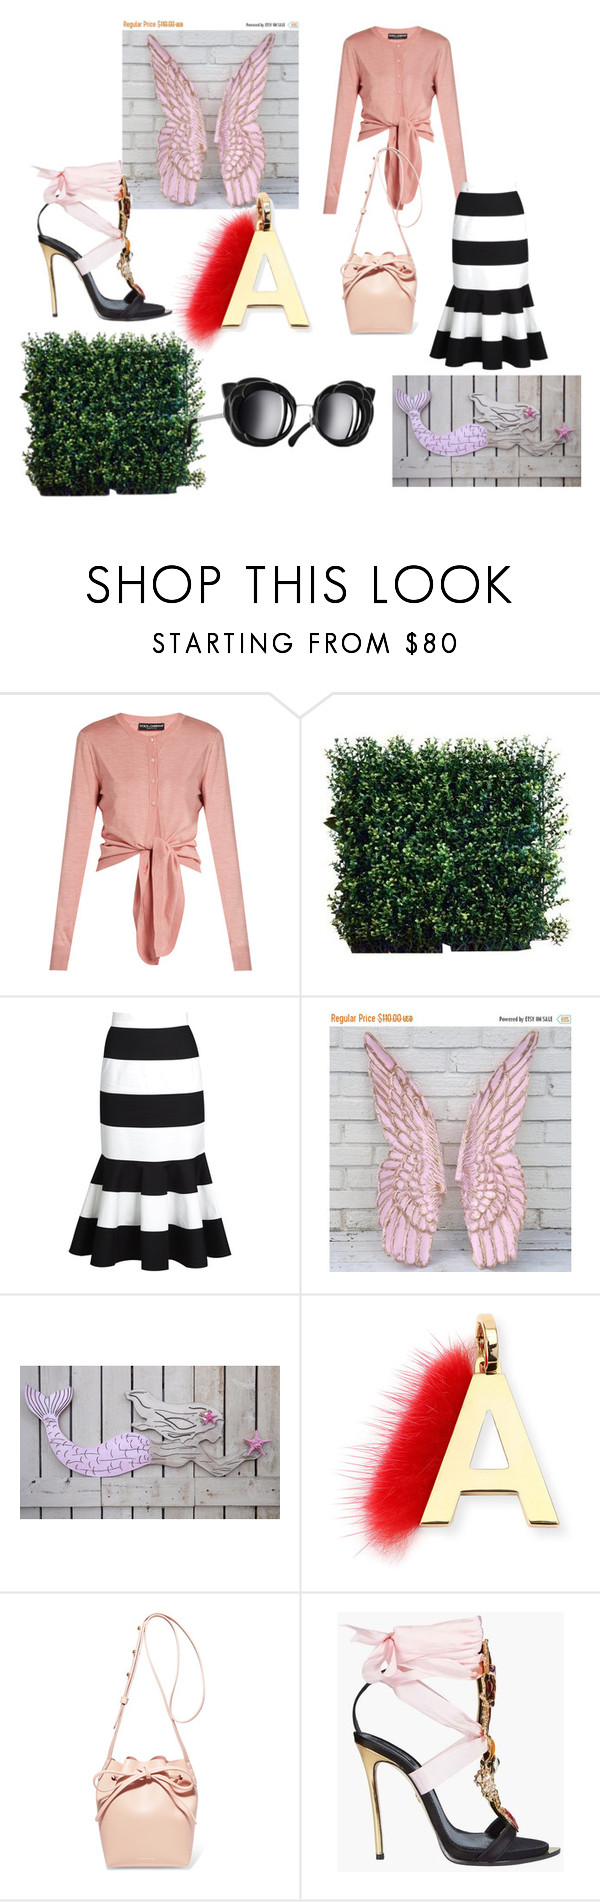 """""""Untitled #102"""" by sabii-dlii ❤ liked on Polyvore featuring Dolce&Gabbana, Fendi, Mansur Gavriel, Chanel and Dsquared2"""